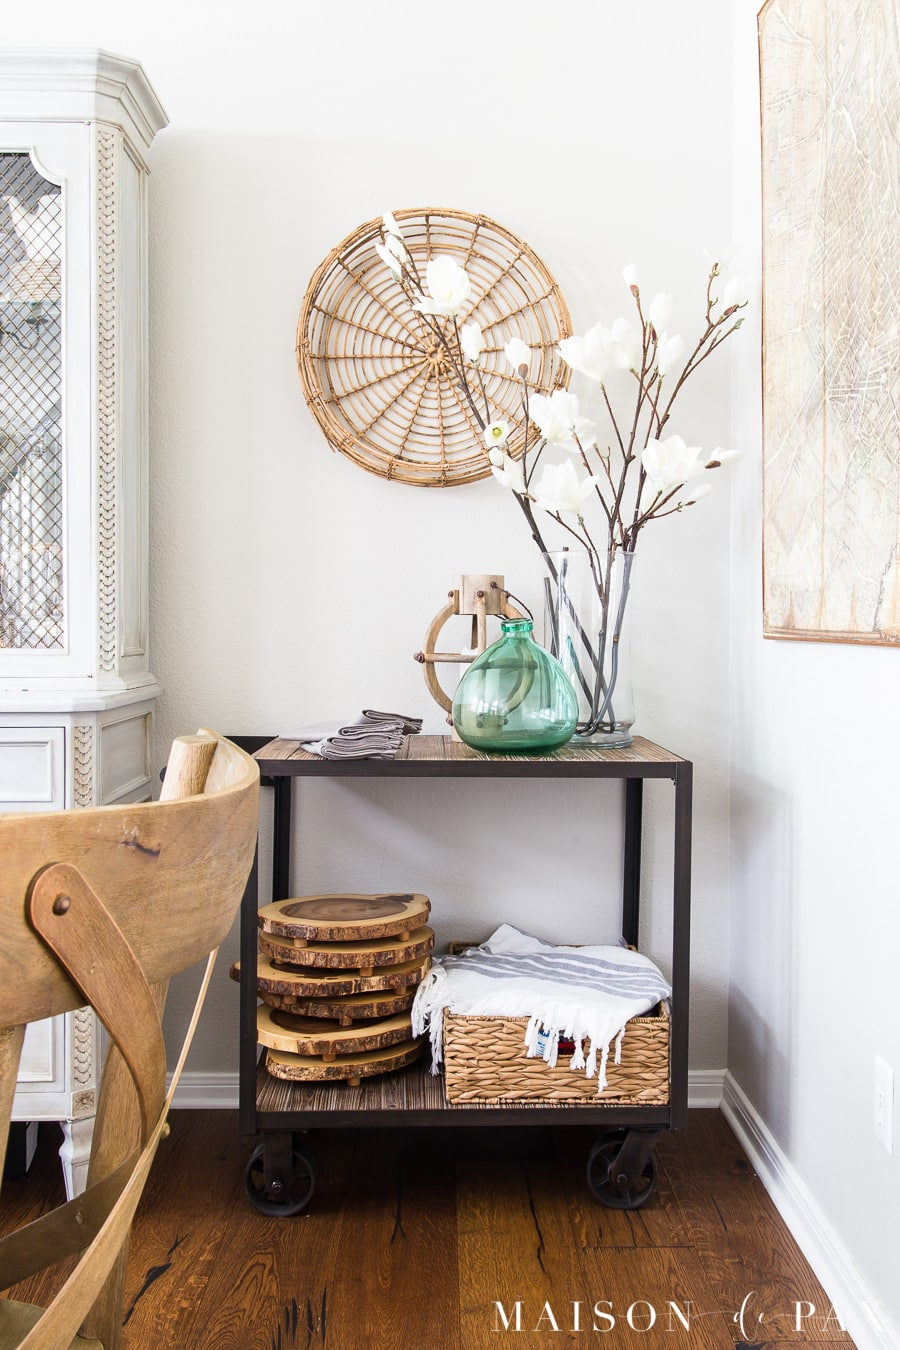 Get a simple, casually elegant look for your summer bar cart. #frenchcountry #neutrals #diningroom #decorating #frenchfarmhouse #frenchdecor #diningroomdecor